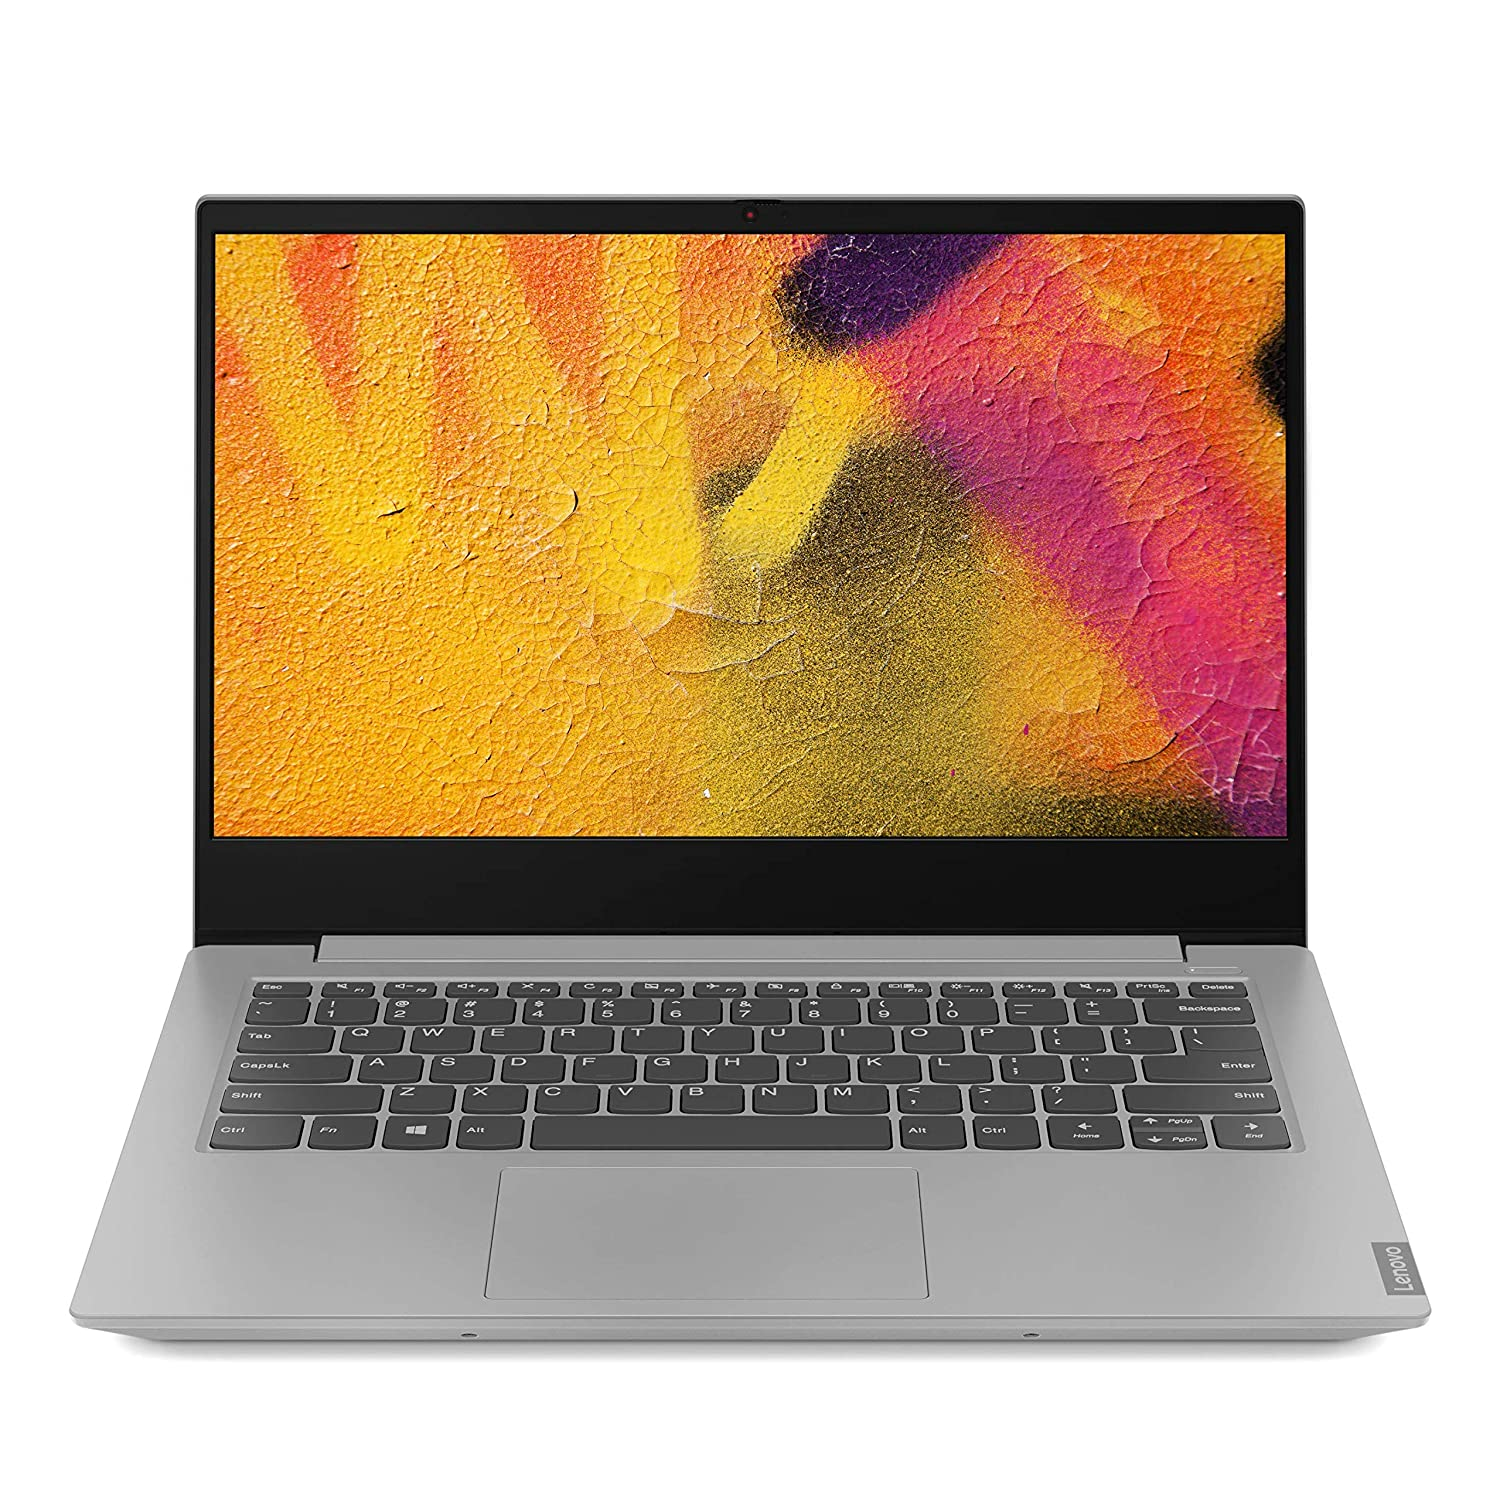 Buy Lenovo Ideapad S340 Intel Core I3 10th Gen 14 Inch Fhd Thin And Light Gaming 4gb 1tb Windows Office Intel Uhd Integrated Graphics Platinum Grey 1 69kg 81vv00jein Online At Low Prices In India Amazon In